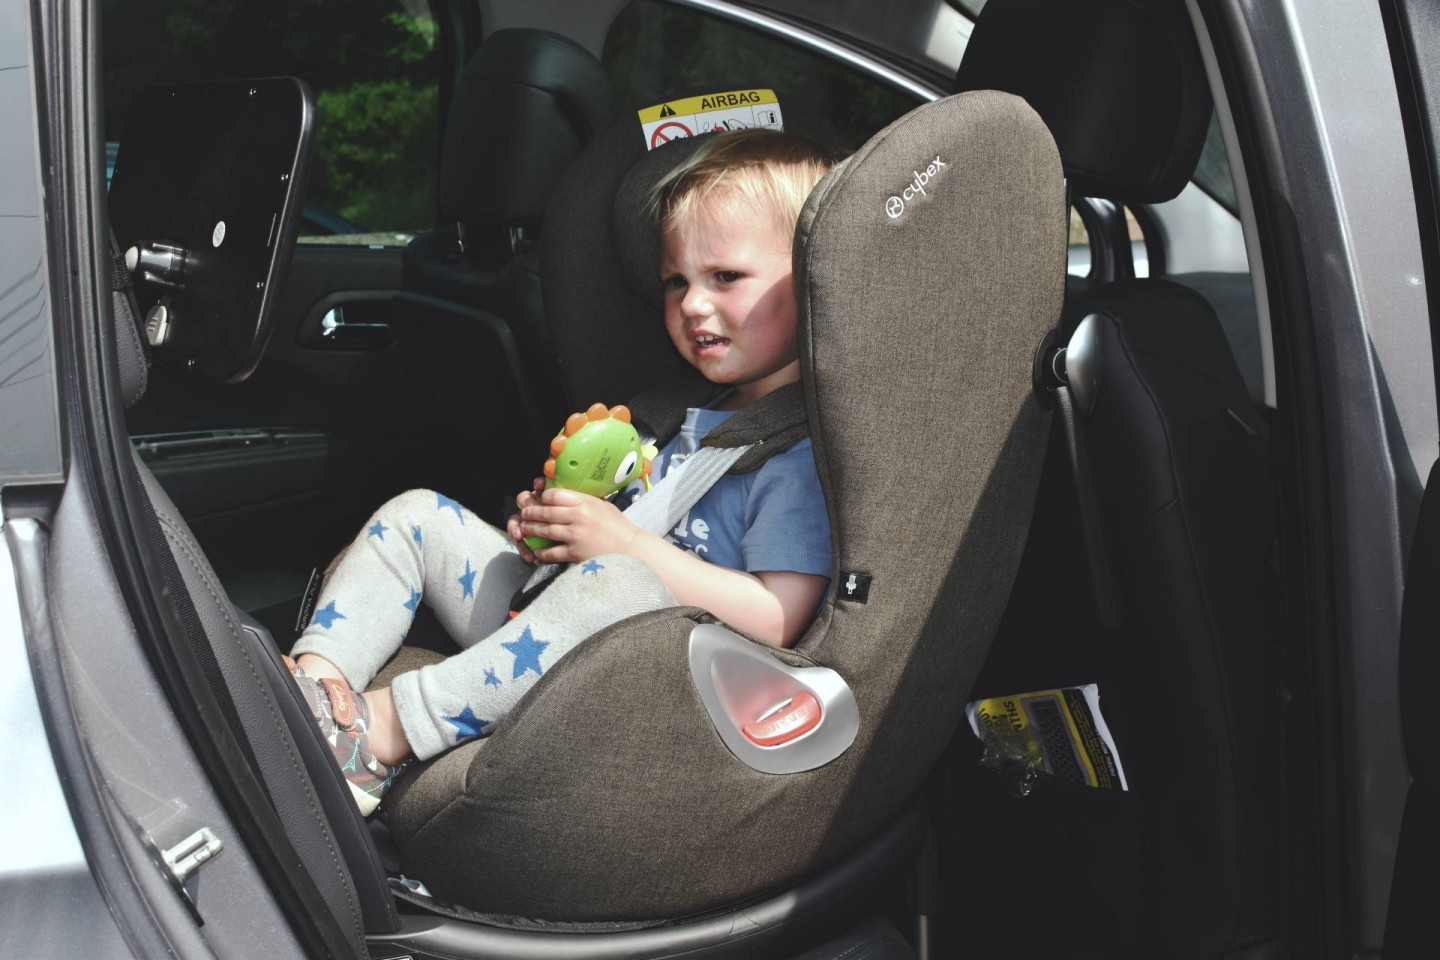 Cybex Car Seat 1 Year Old Extended Rear Facing Car Seat In A Cybex Sirona